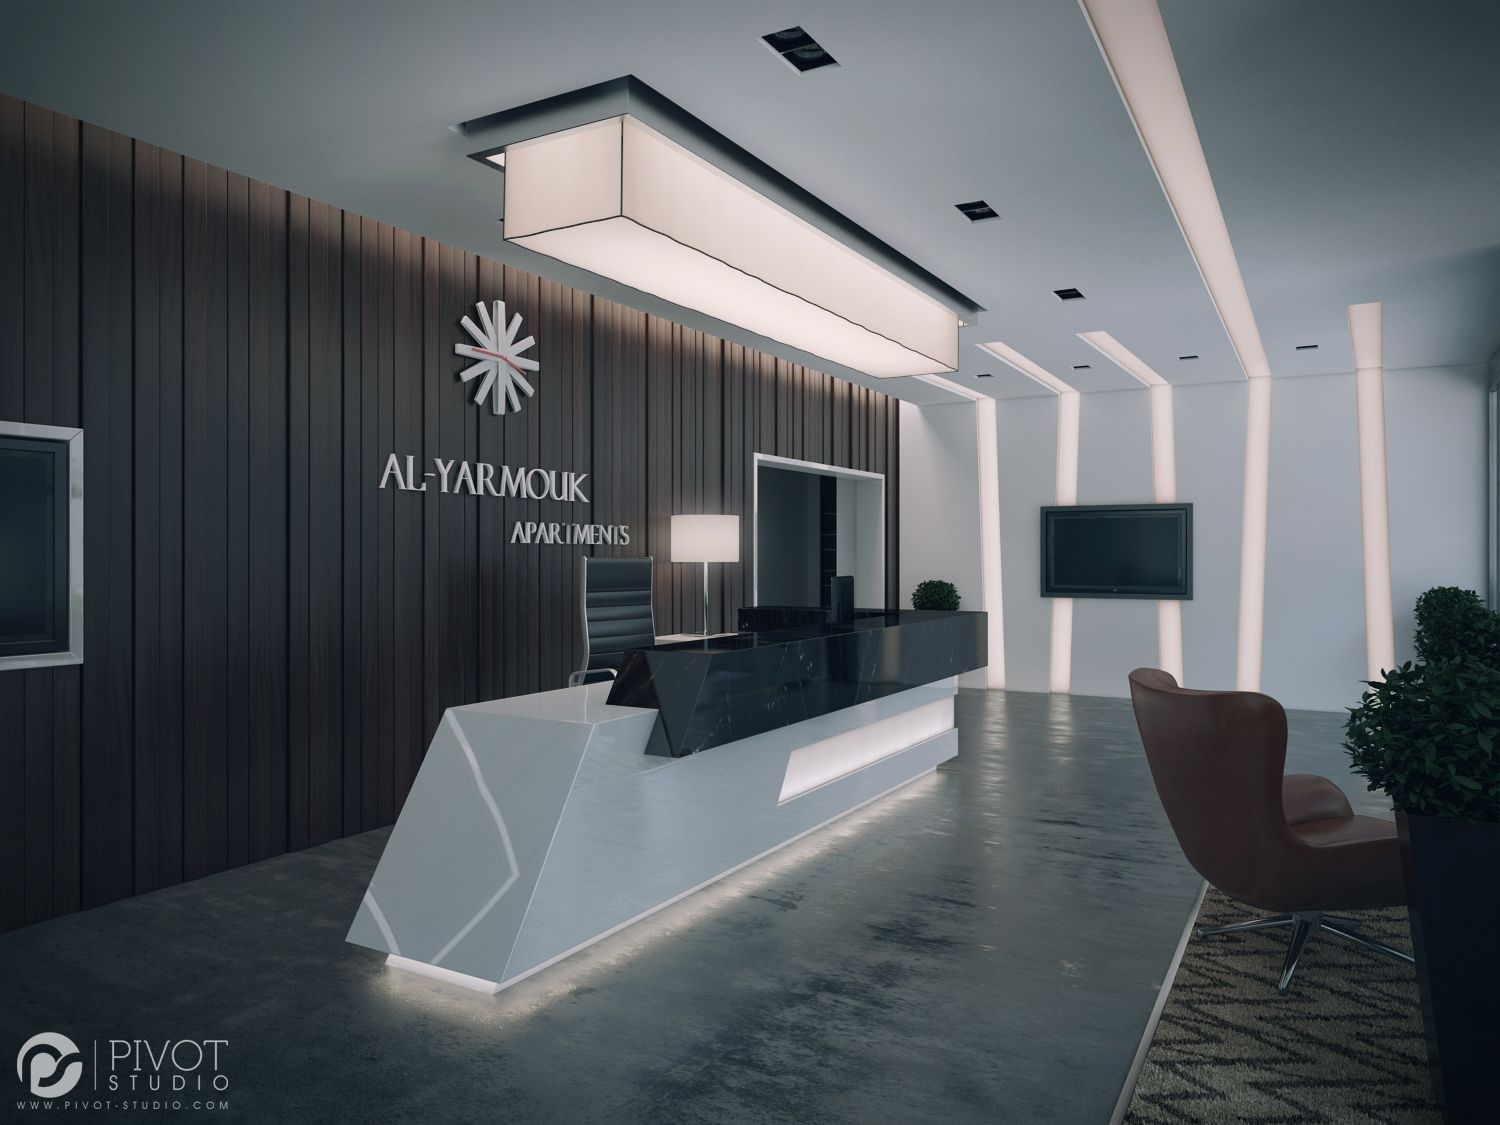 Interior Design And Visuals Of Apartments Building Reception